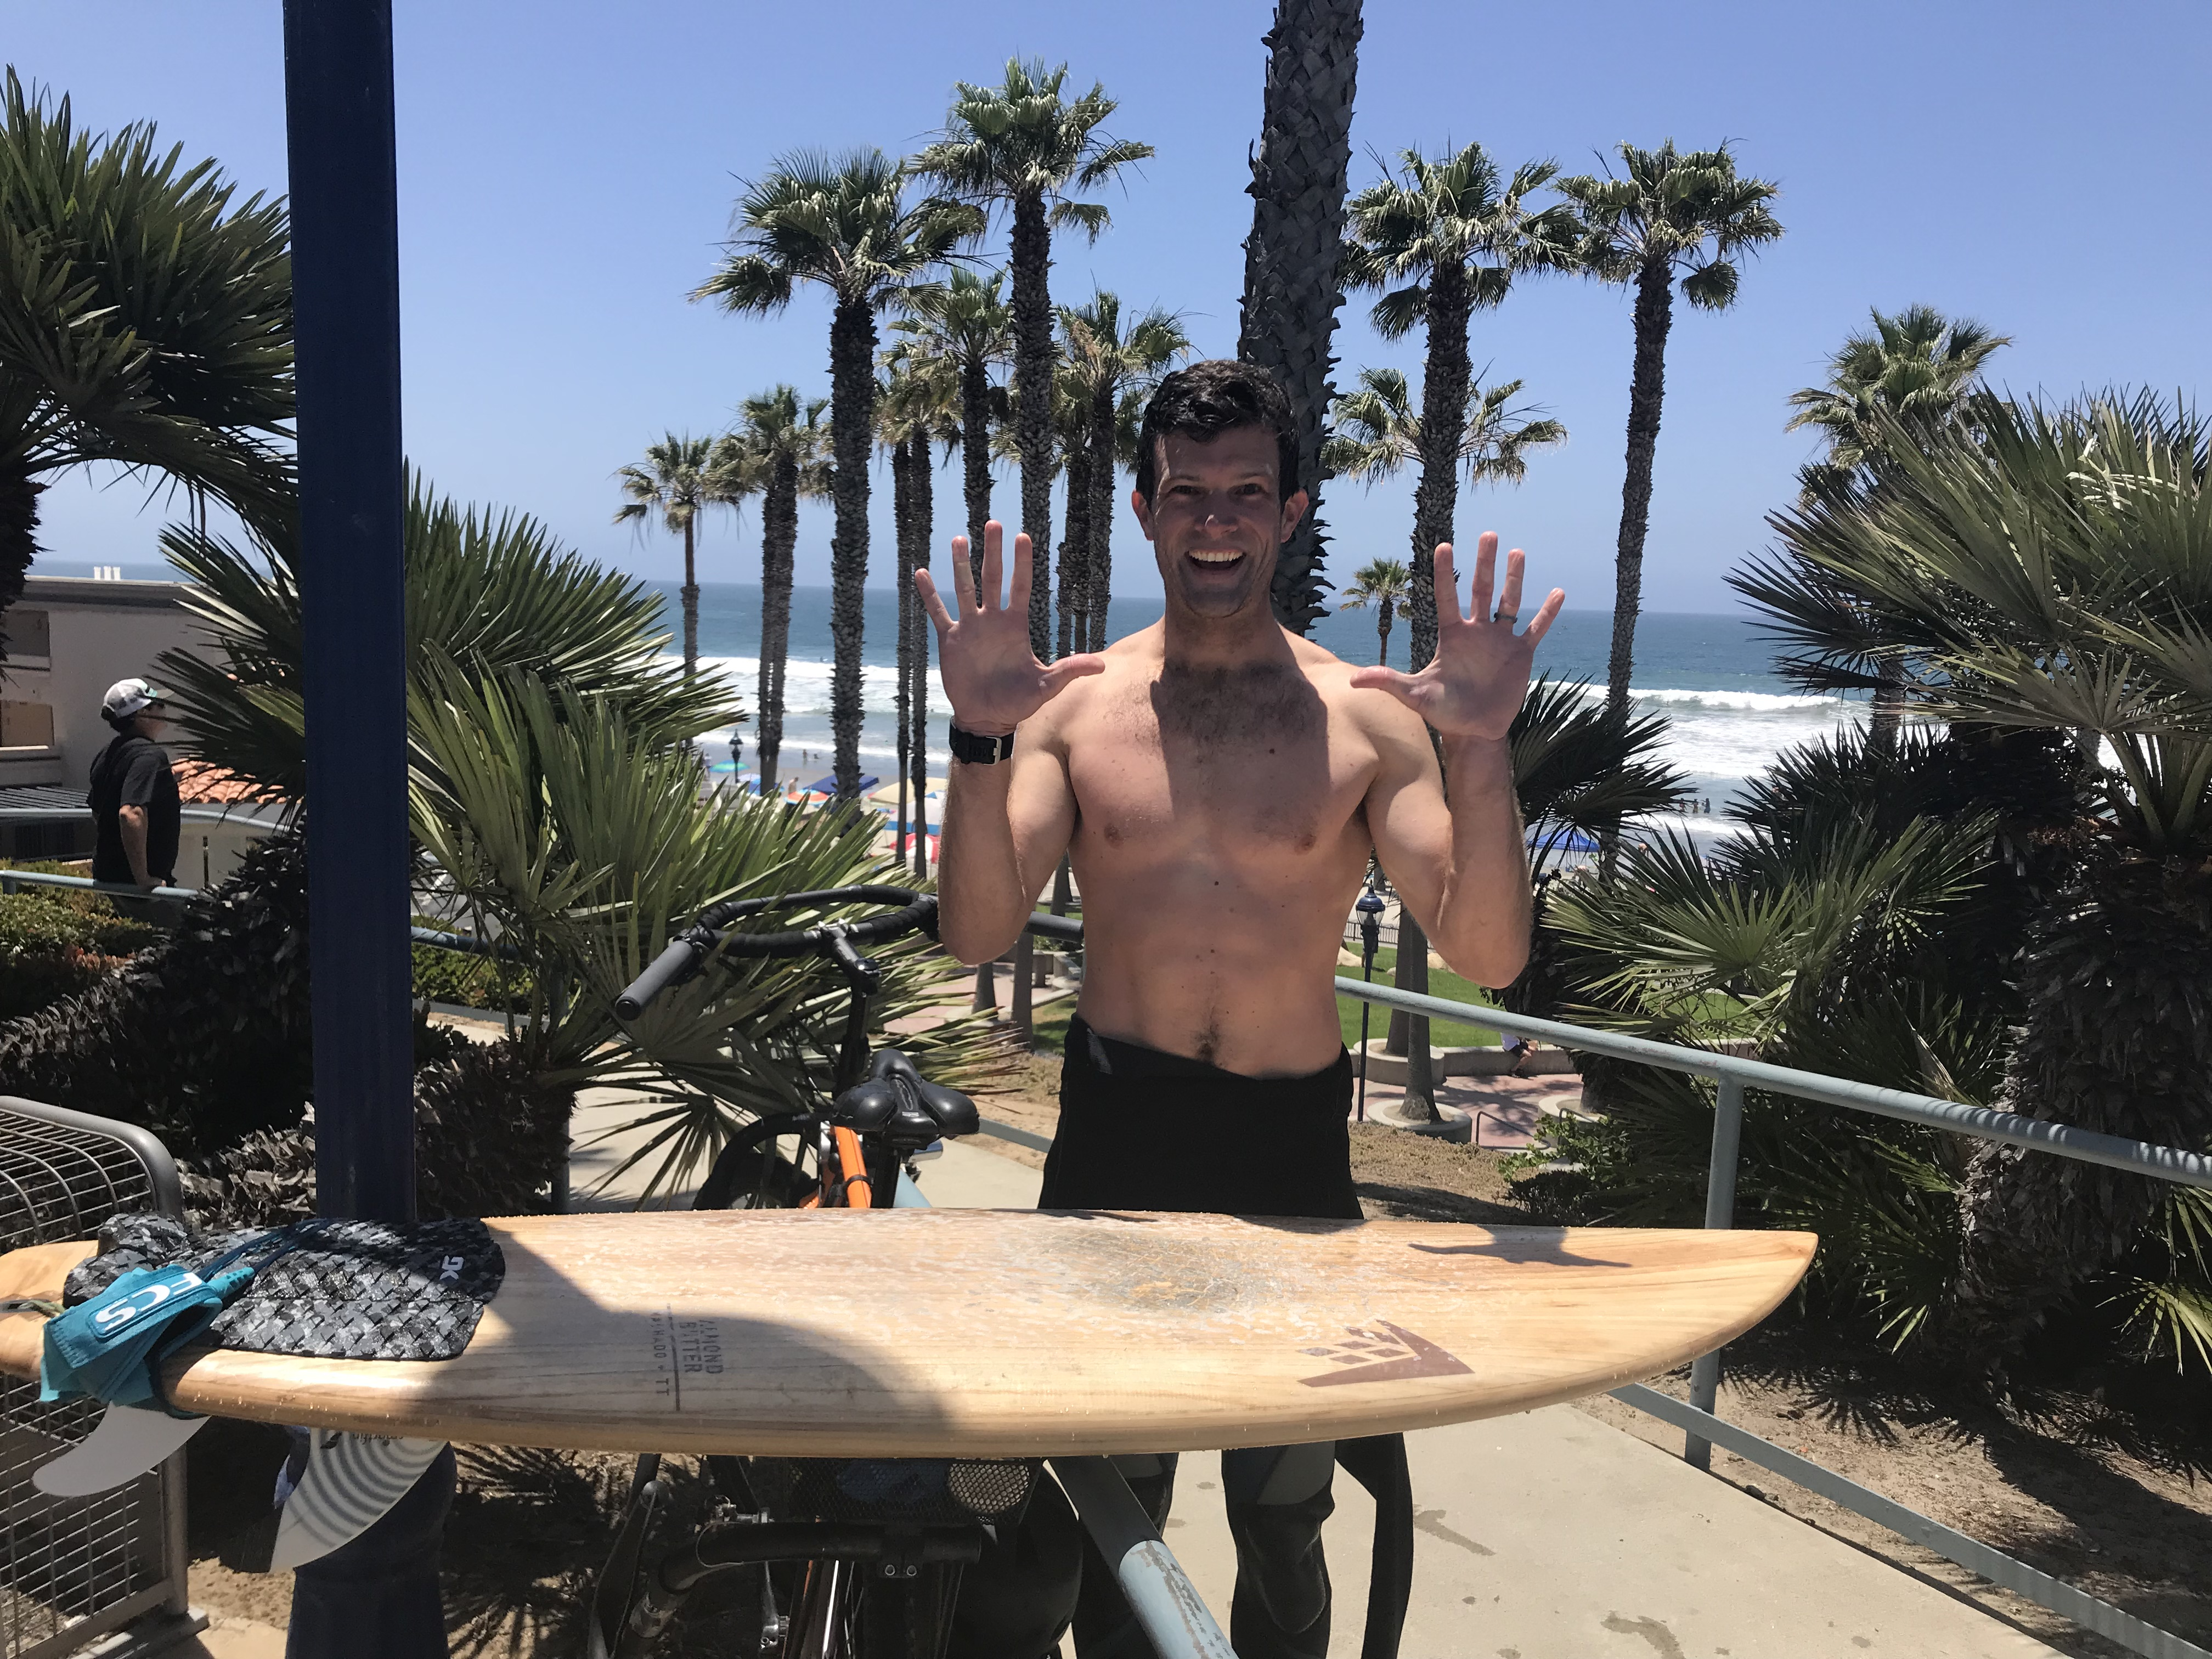 Phil celebrates reaching Day 10 of Bike to Surf Month